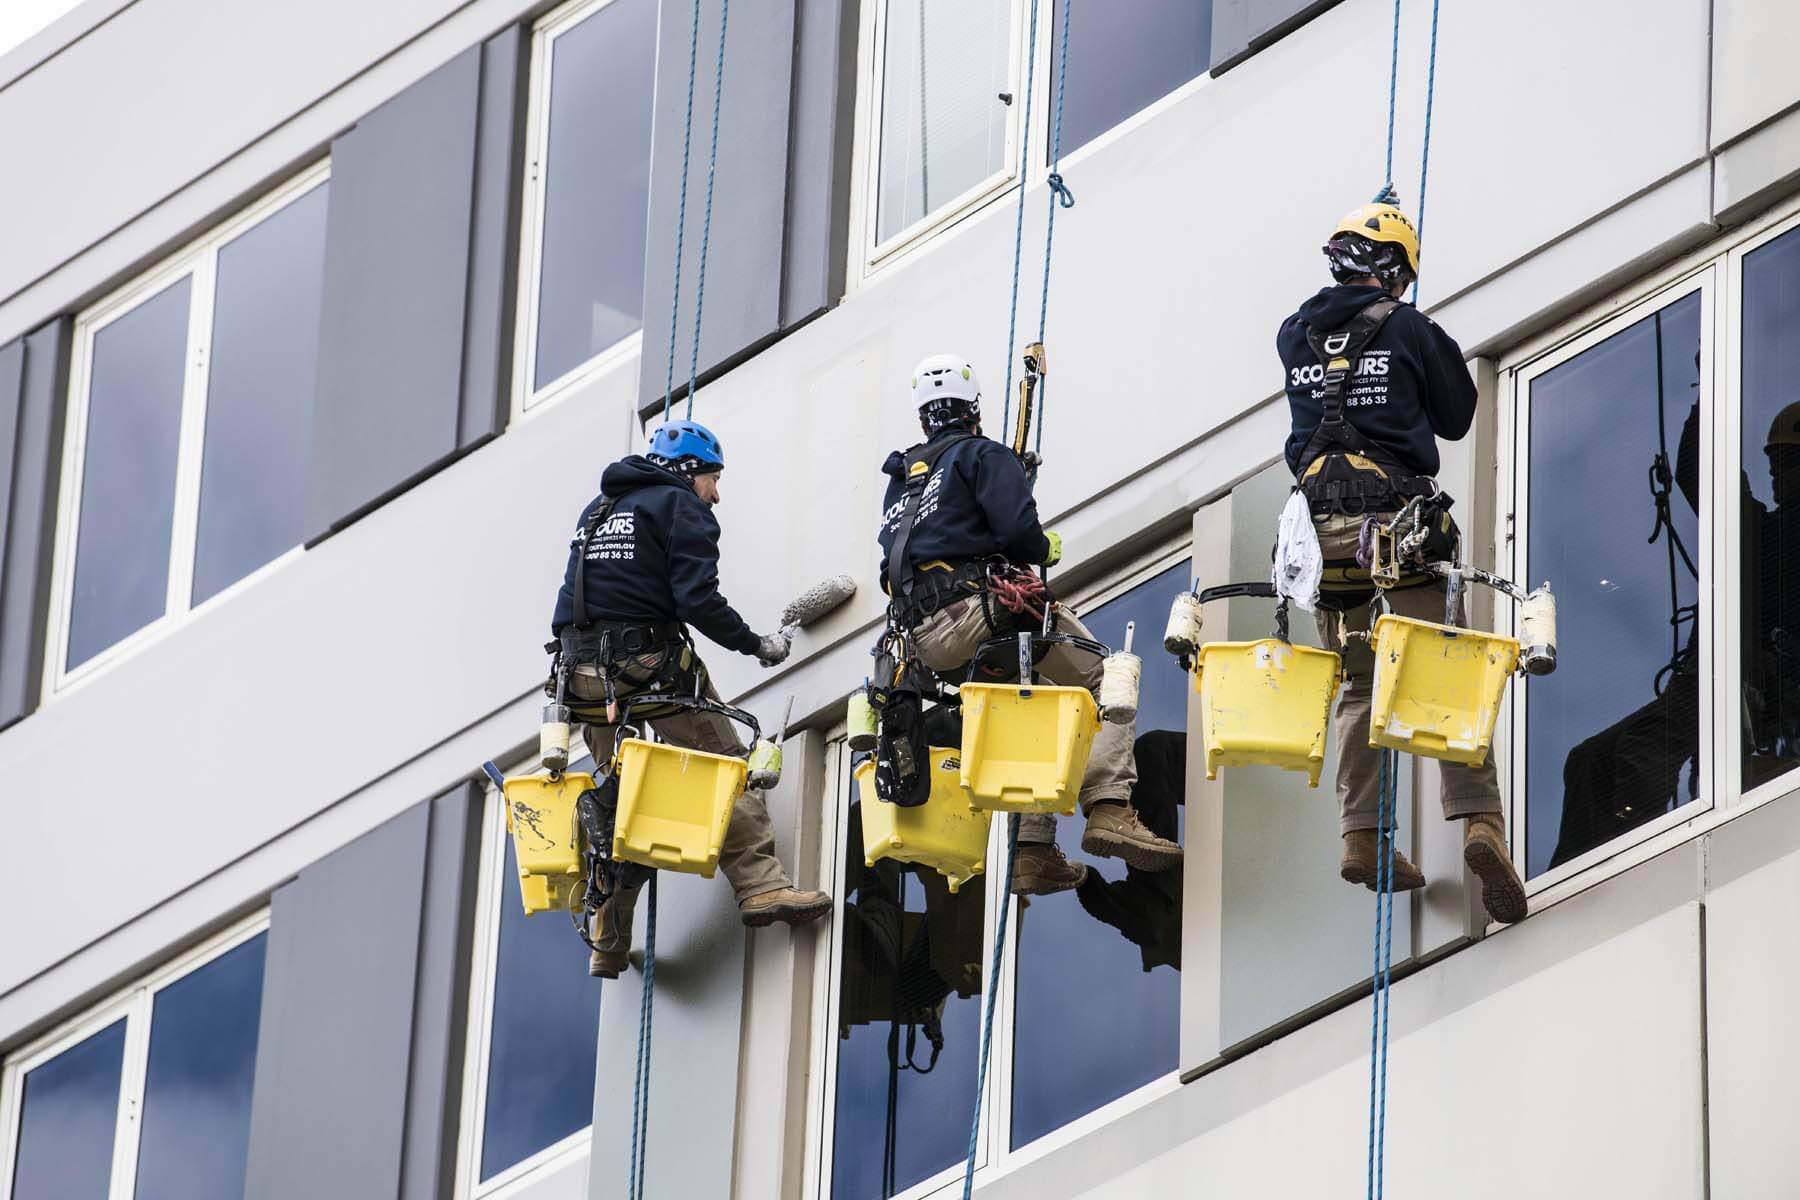 st-vincents-hospital-repainting-rope-access